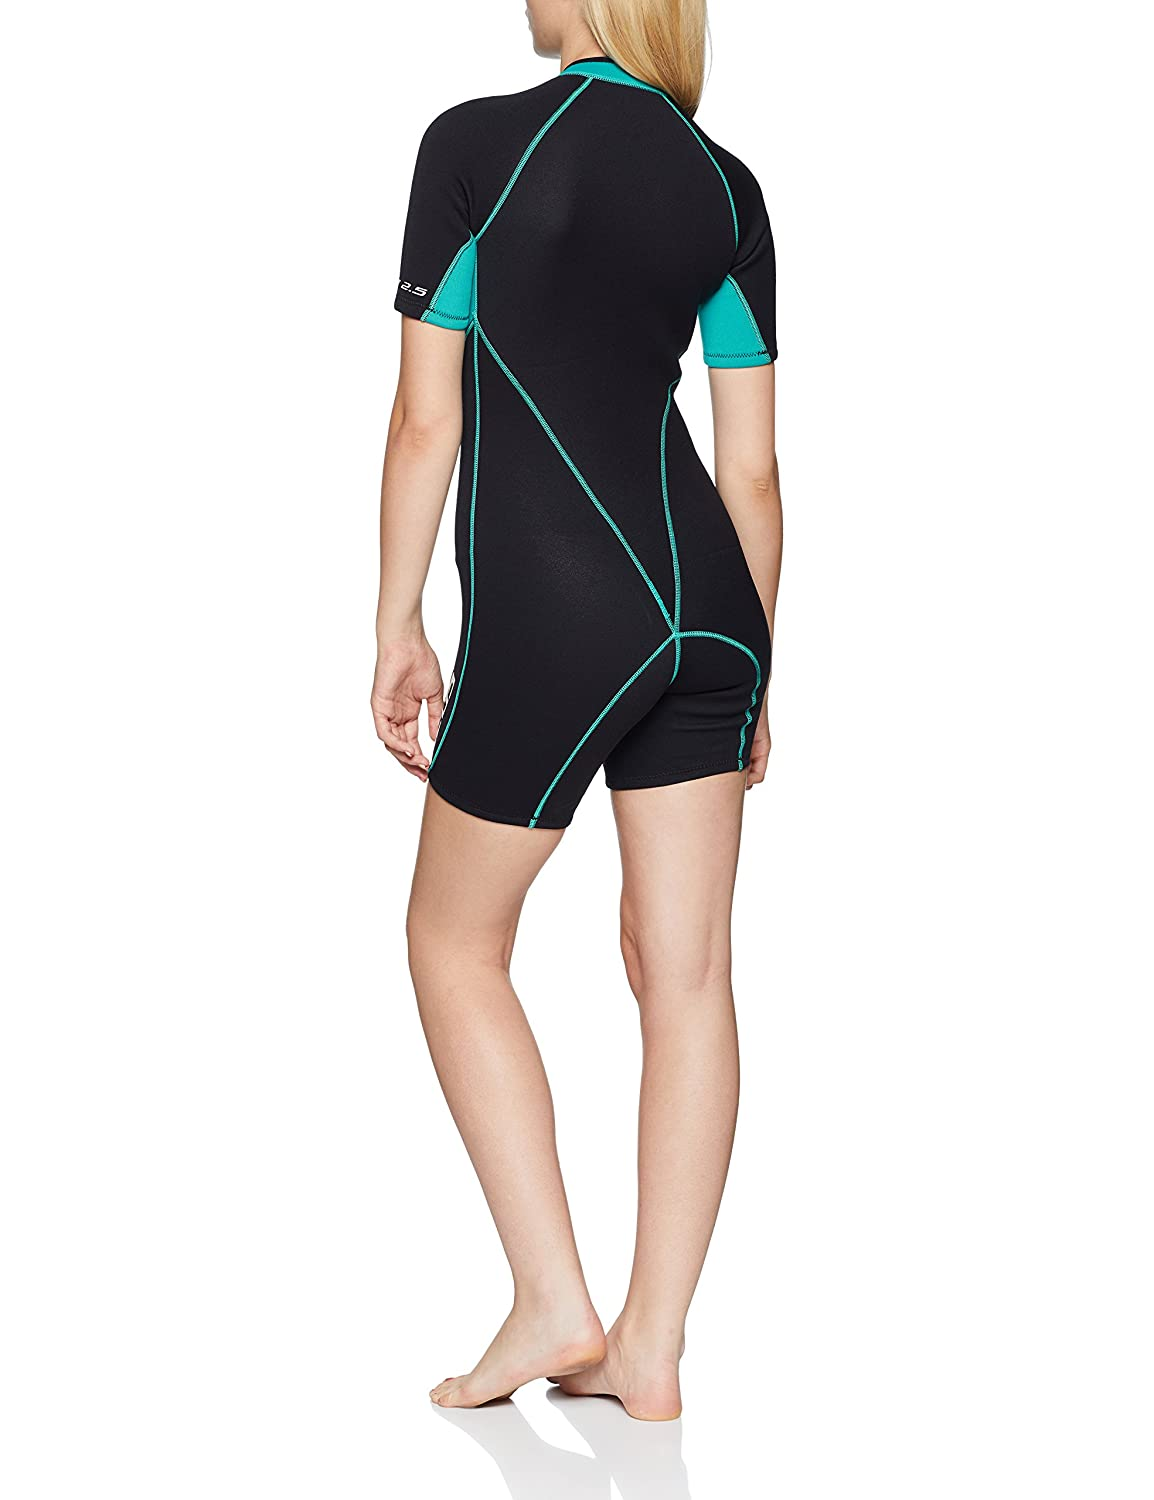 Amazon.com   SEAC Women s Shorty Sealight Wetsuit   Surfing Wetsuits    Sports   Outdoors 5edacd306